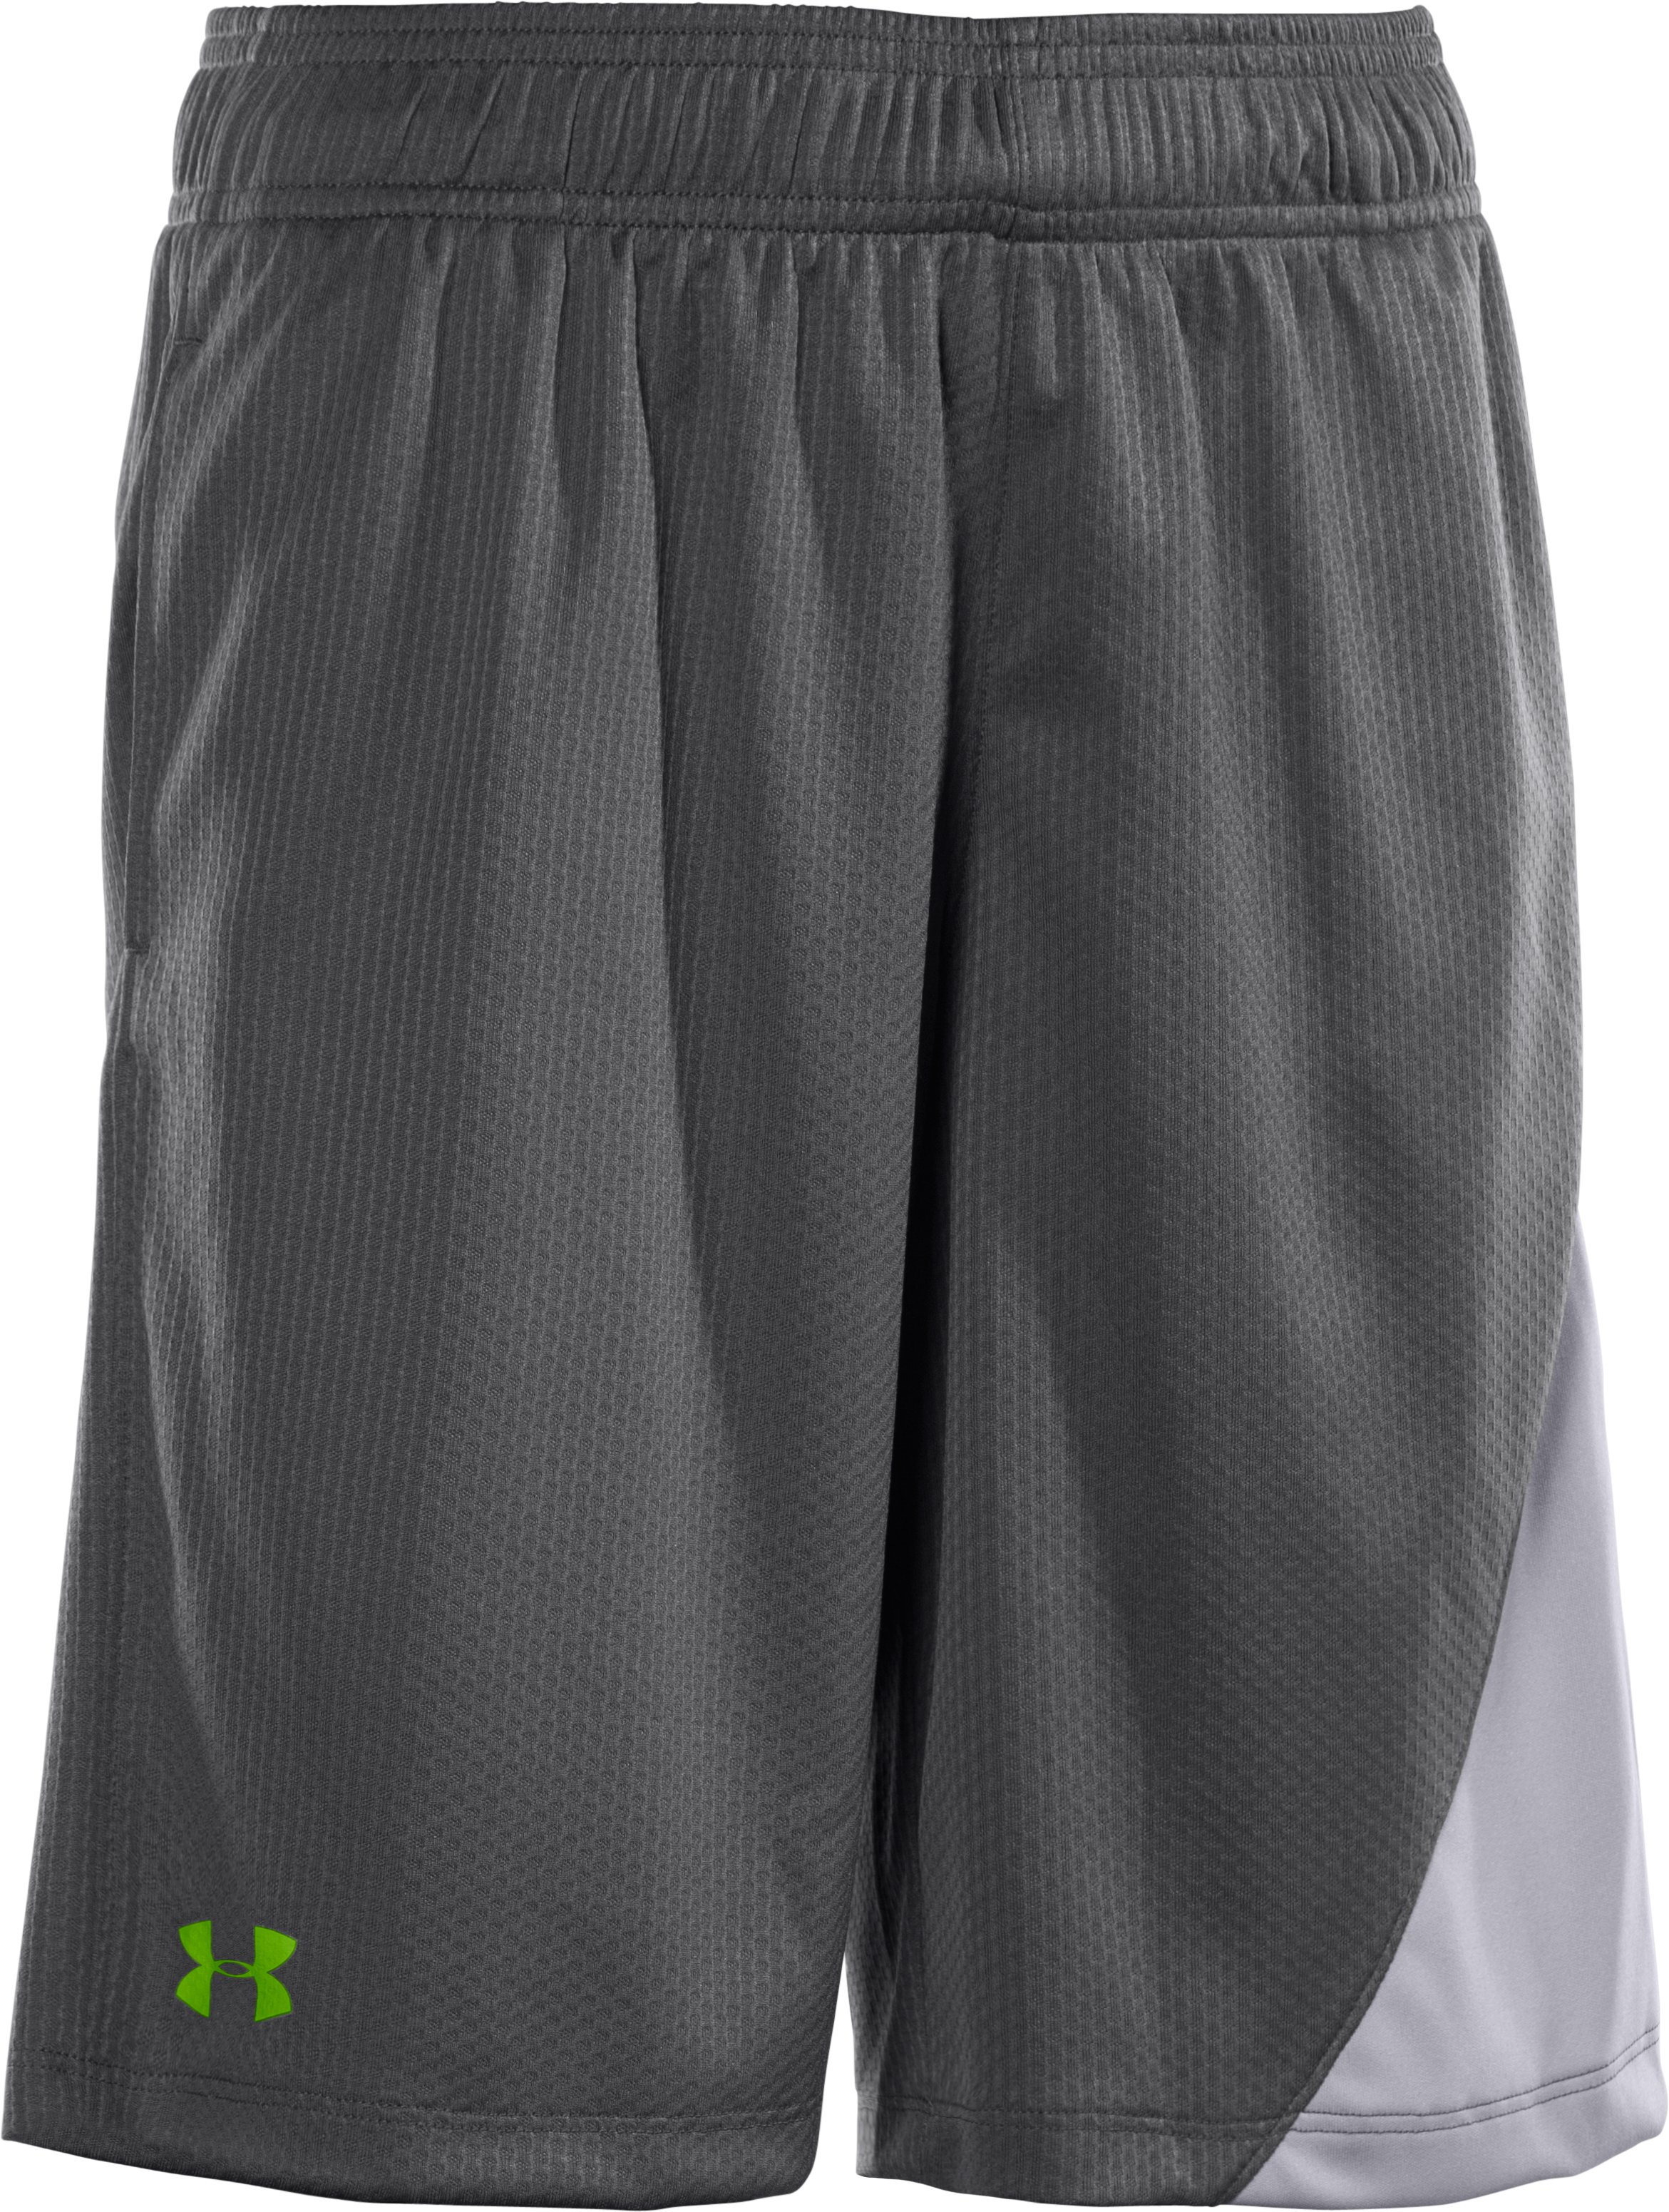 Boys' UA Influencer Training Shorts, Graphite